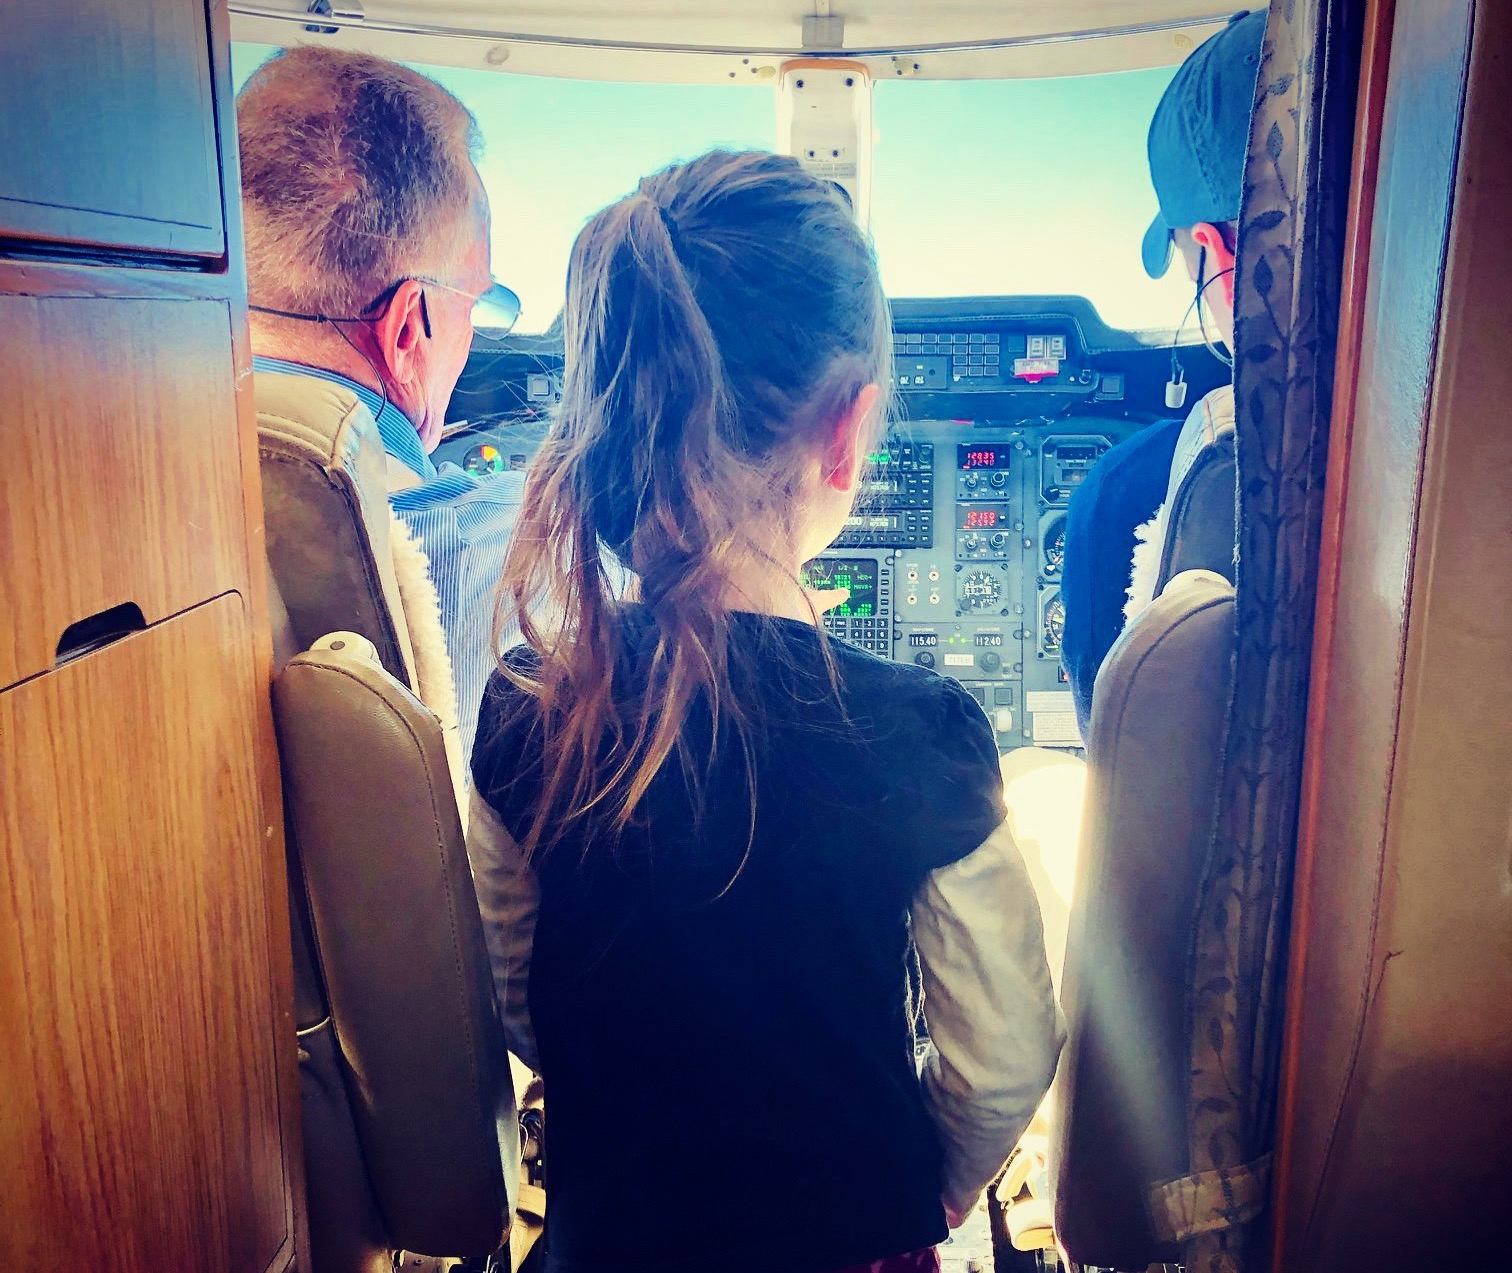 Our IMPact - 10 Years Providing Lifesaving Flights$2m+ In-Kind Donations To Date200+ Children ImpactedIn the first 4 months of 2019, AeroAngel completed more flights than in all of 2018.